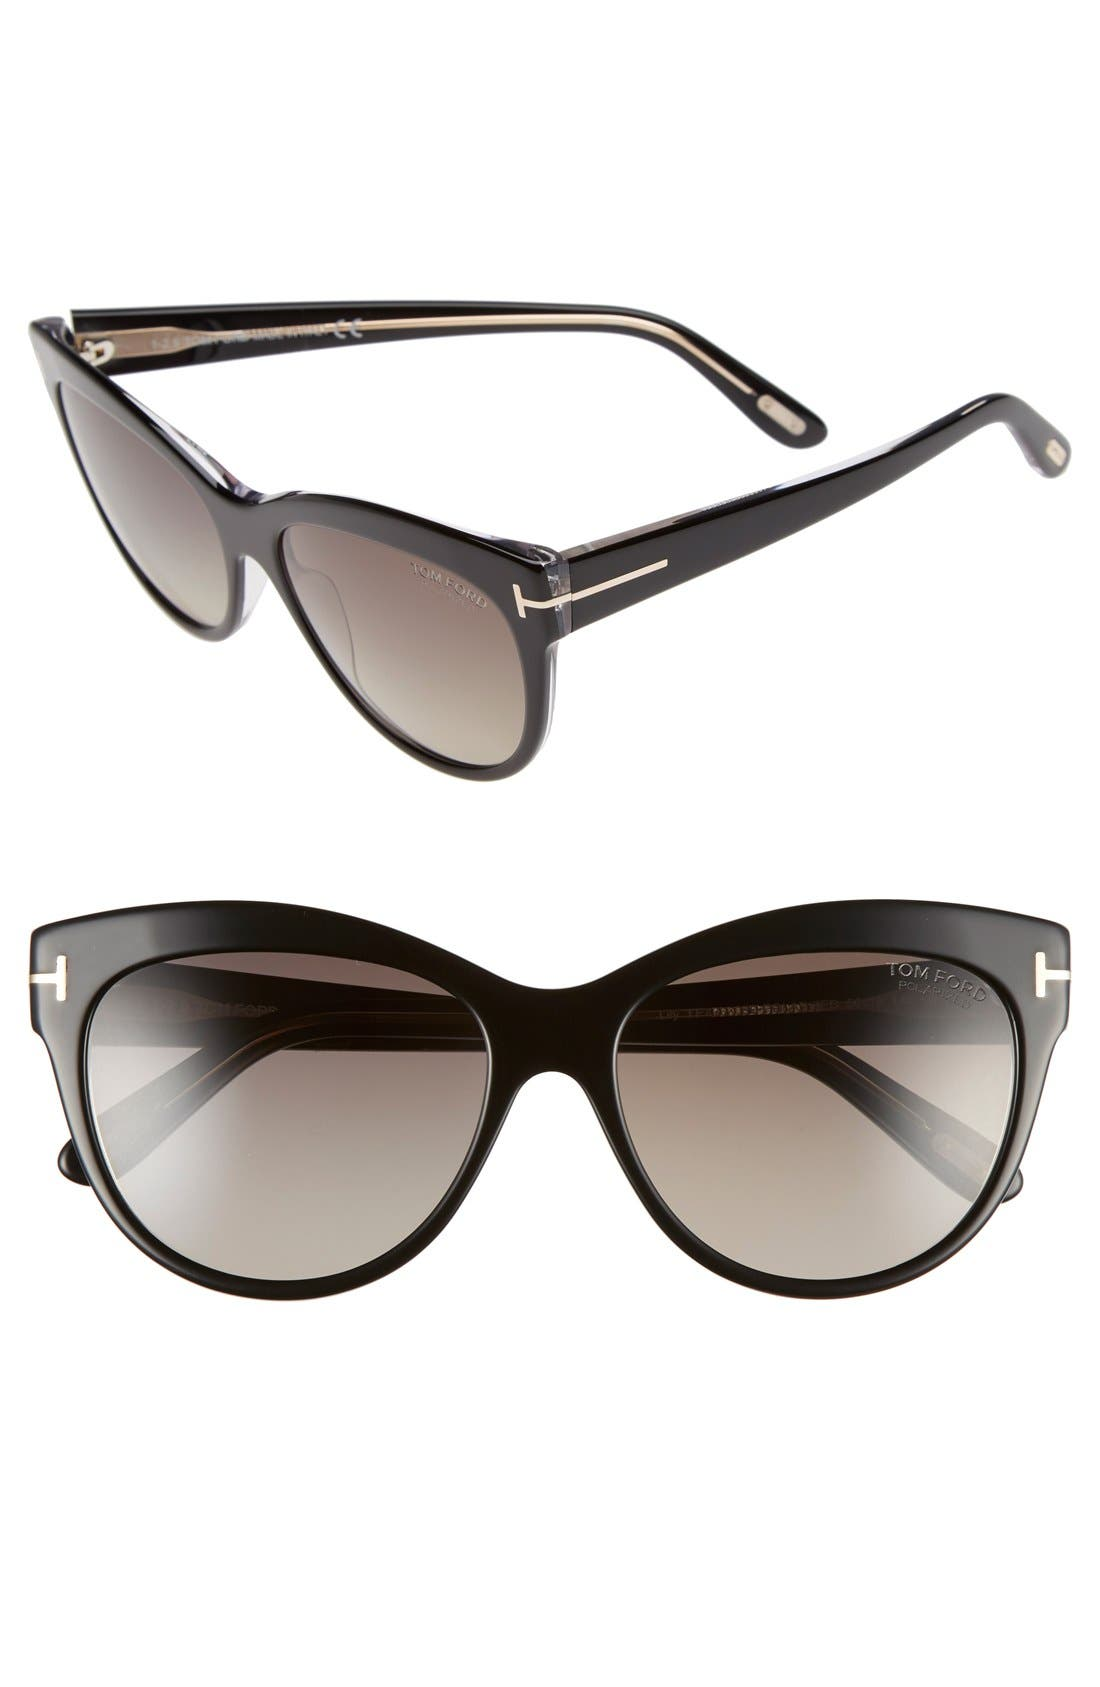 Alternate Image 1 Selected - Tom Ford 'Lily' 56mm Polarized Cat Eye Sunglasses